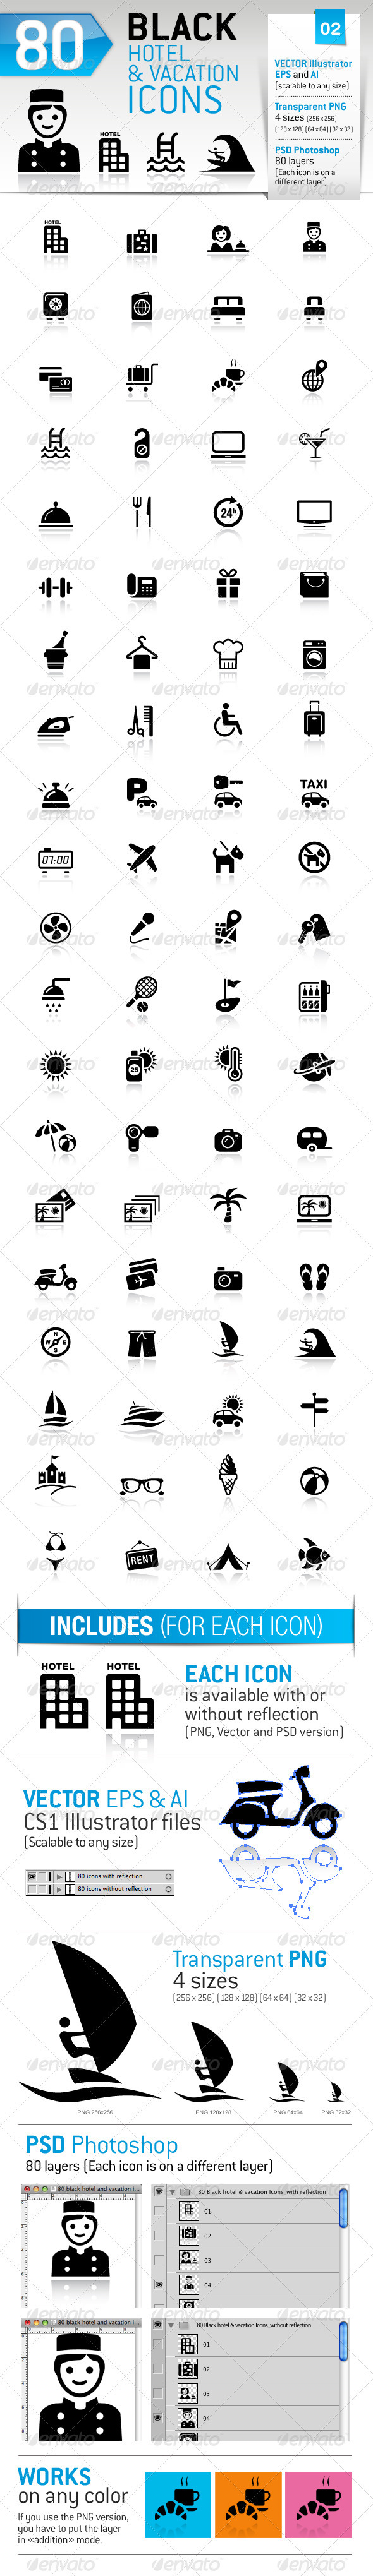 80 Black Hotel And Vacation Icons - Icons